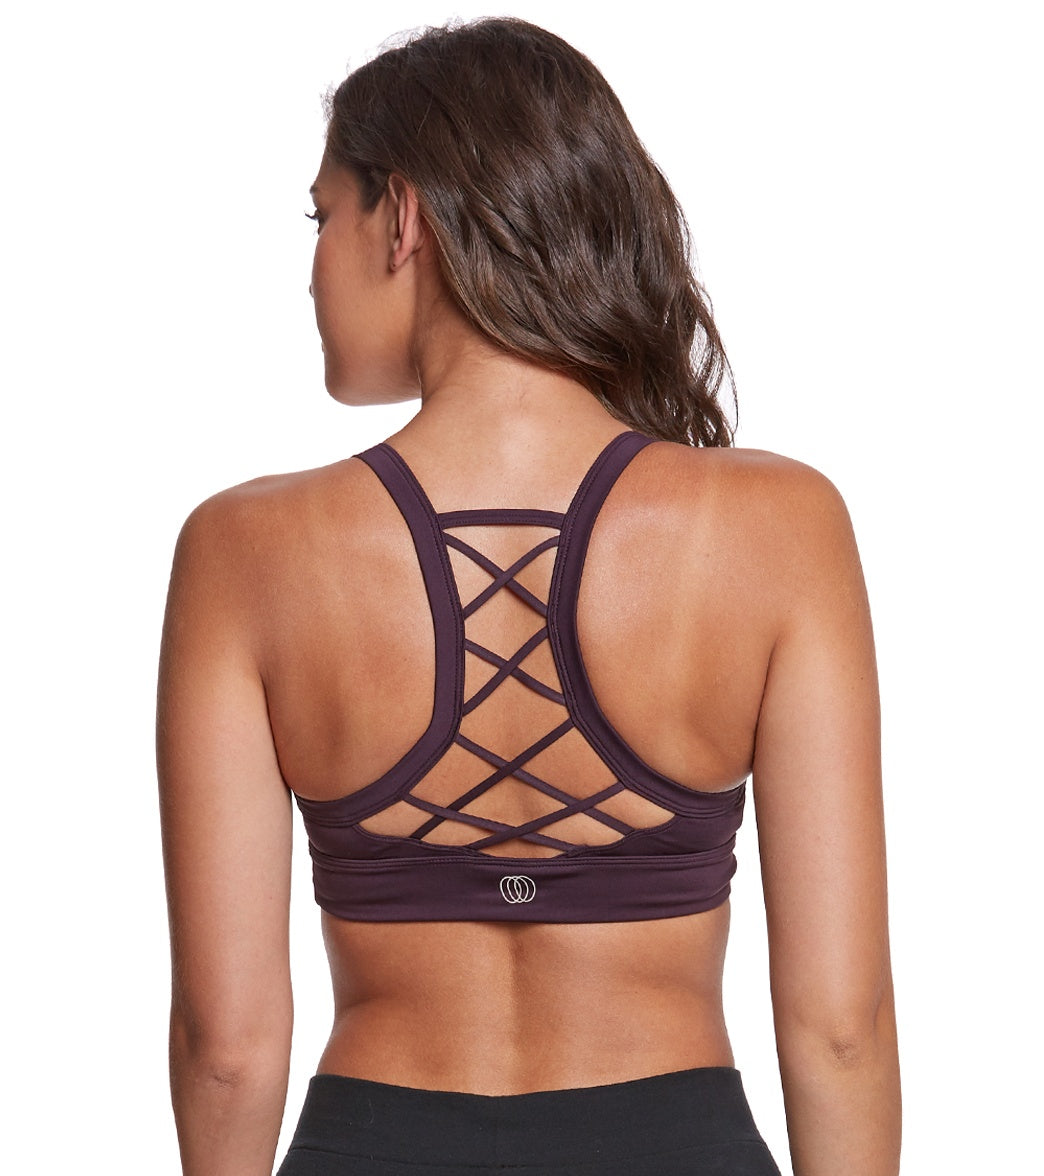 4c1809328adc2 Balance Collection Lynn Yoga Sports Bra at YogaOutlet.com